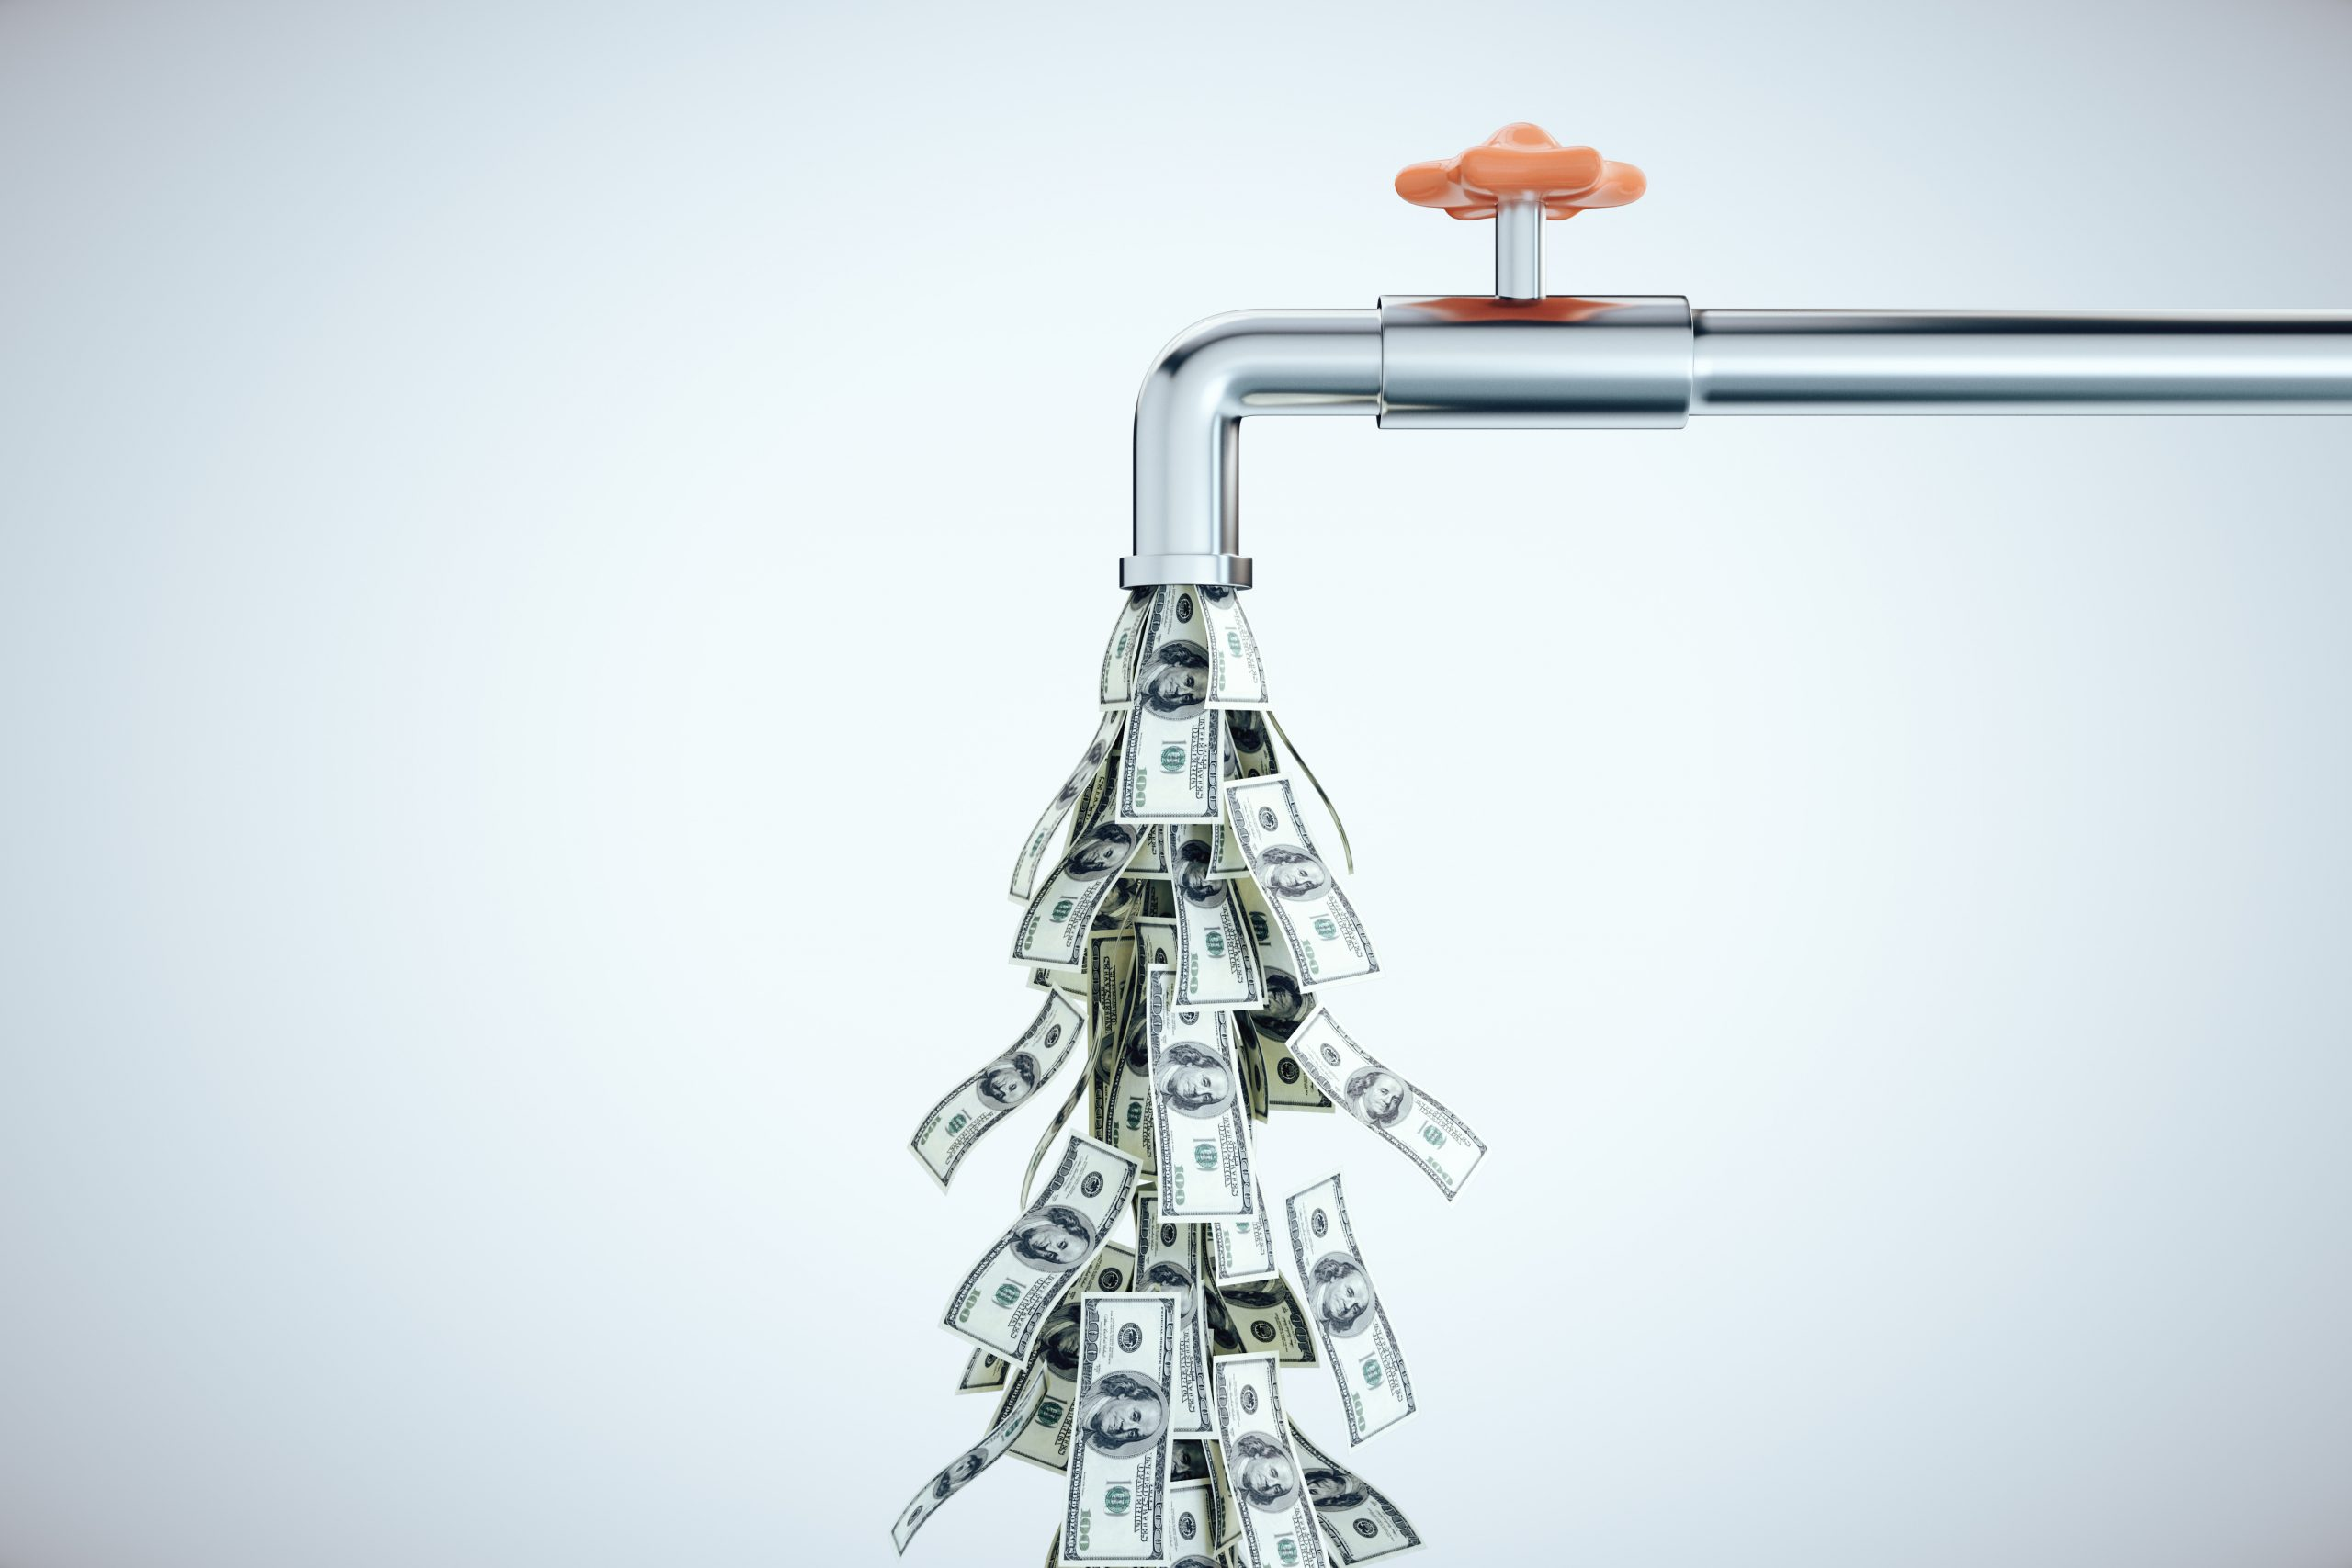 6 Tactics to Quickly Boost Your Cash Flow